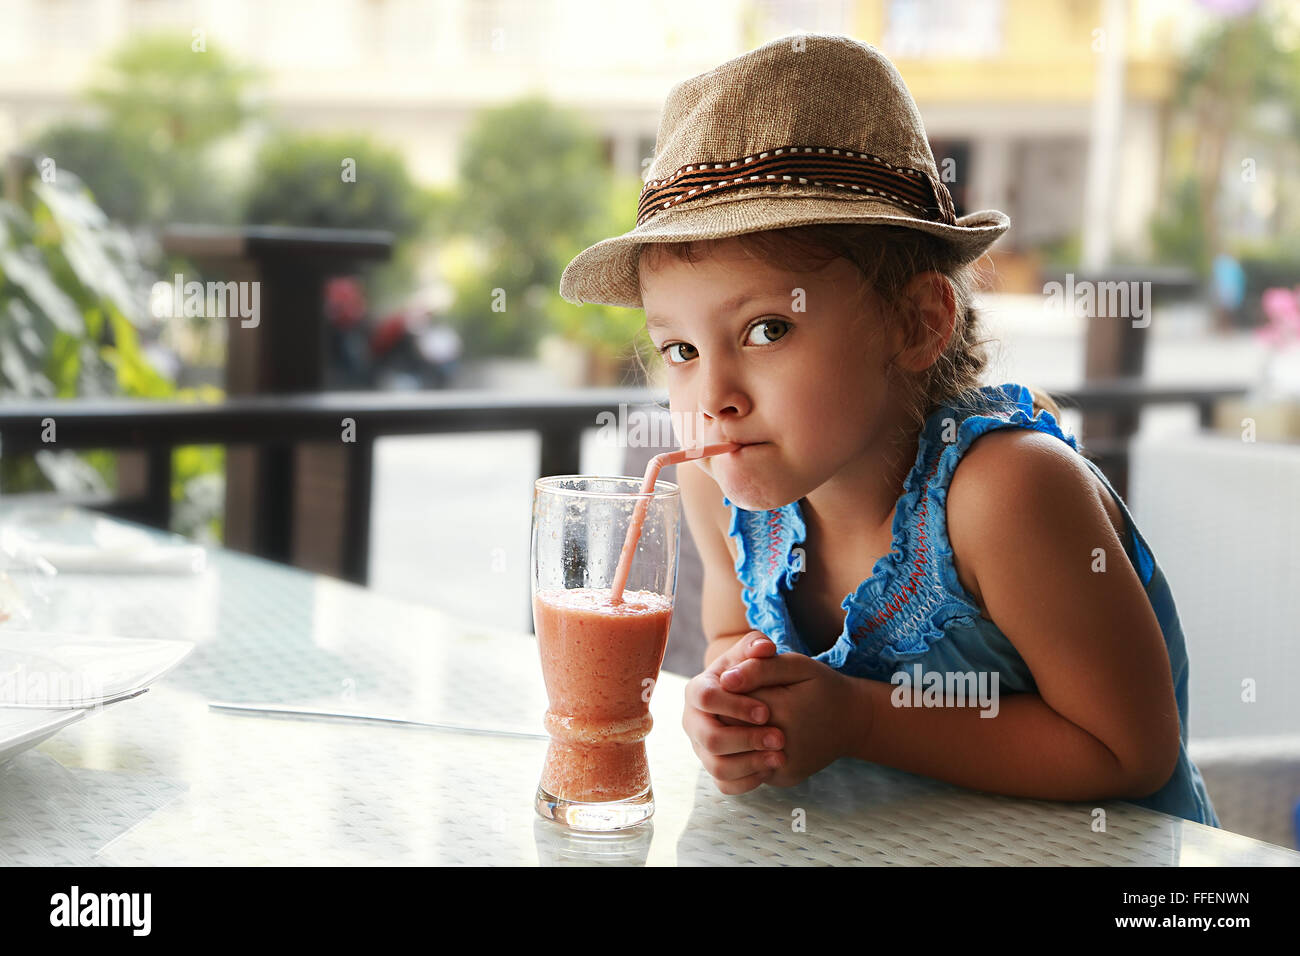 Curious fun cute kid girl drinking tasty juice in summer street cafe - Stock Image